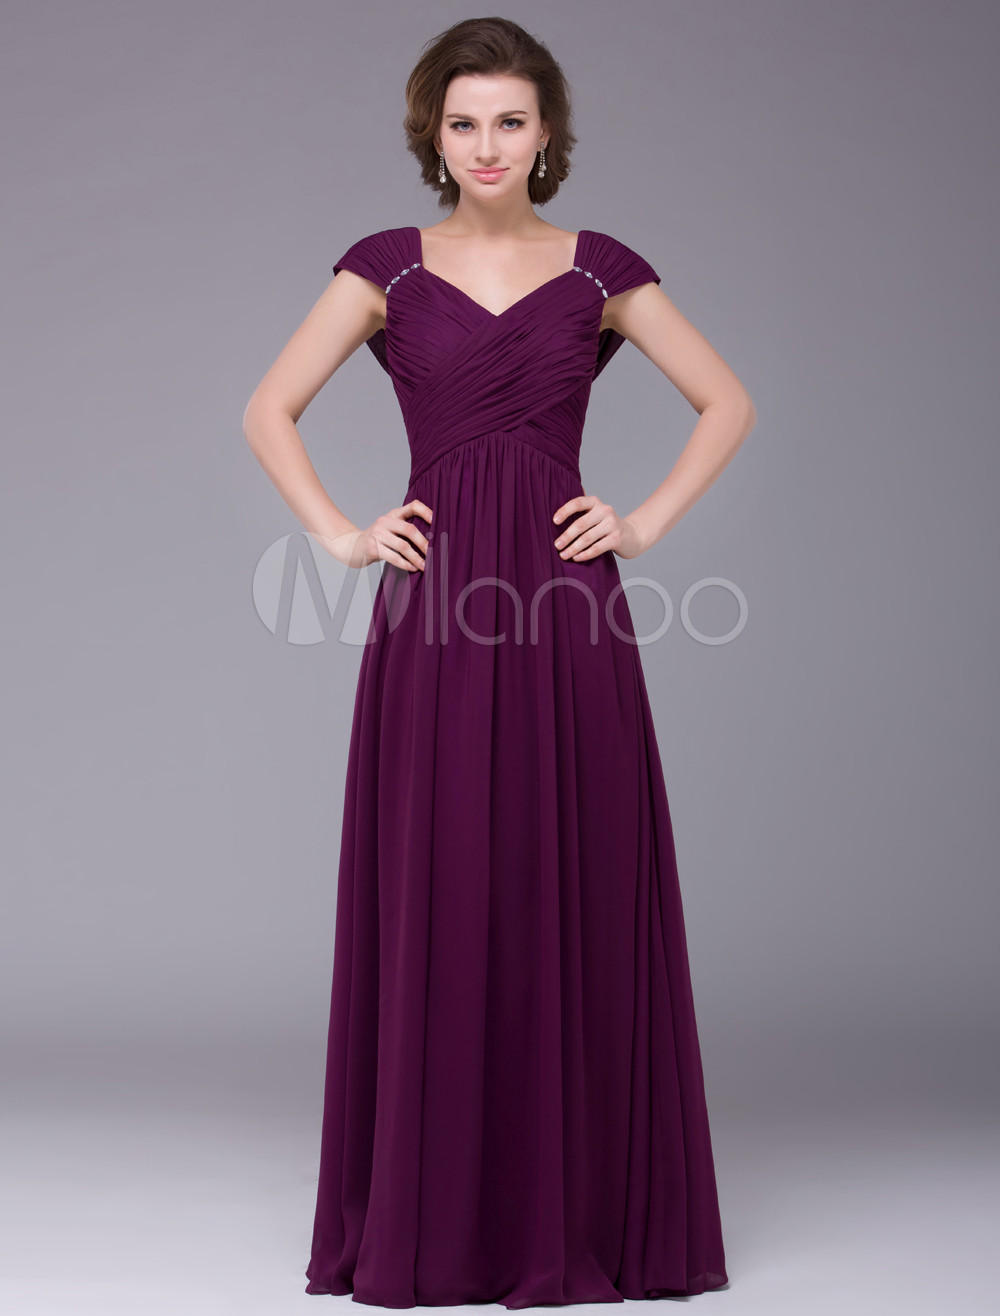 Glamorous Grape Purple Floor Length A-line Chiffon Mother of the Bride Dress